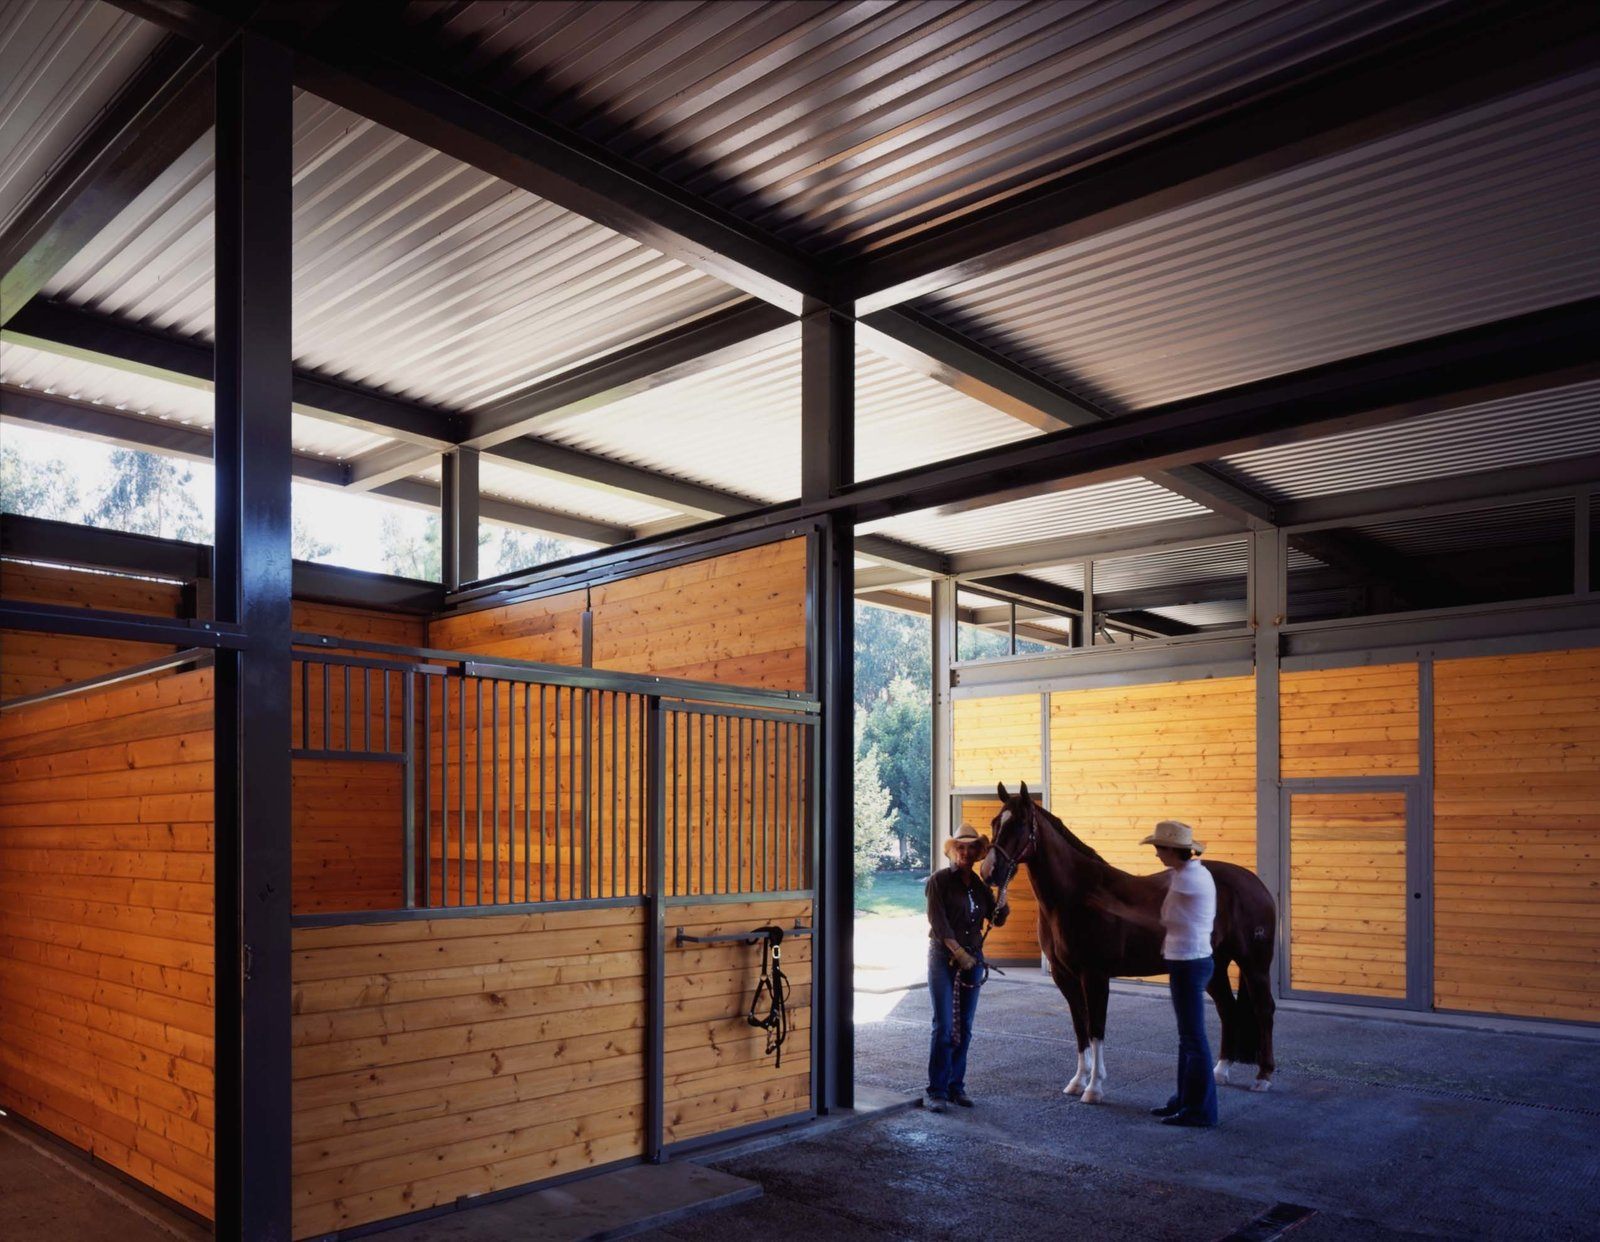 The steel structural system is designed based on a simple grid, constructed to the ideal dimensions for a horse stable. Natural ventilation is encouraged via open clearstories, and the large roof overhang protects the cladding from the rain.  Somis Hay Barn by Studio Pali Fekete architects